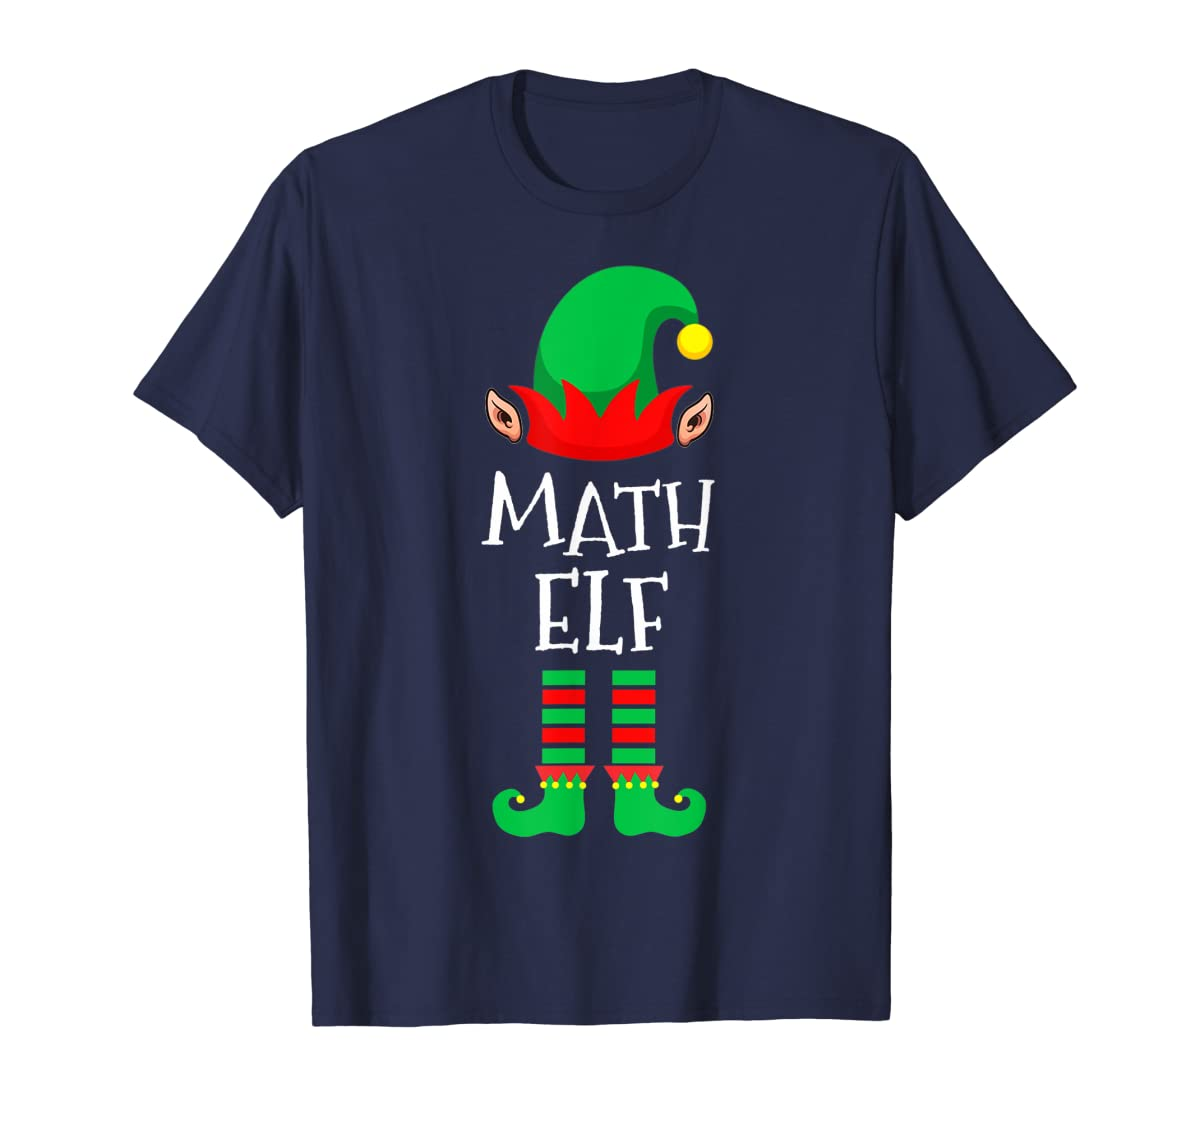 Math Elf - Funny School Teacher Christmas T-Shirt-Men's T-Shirt-Navy